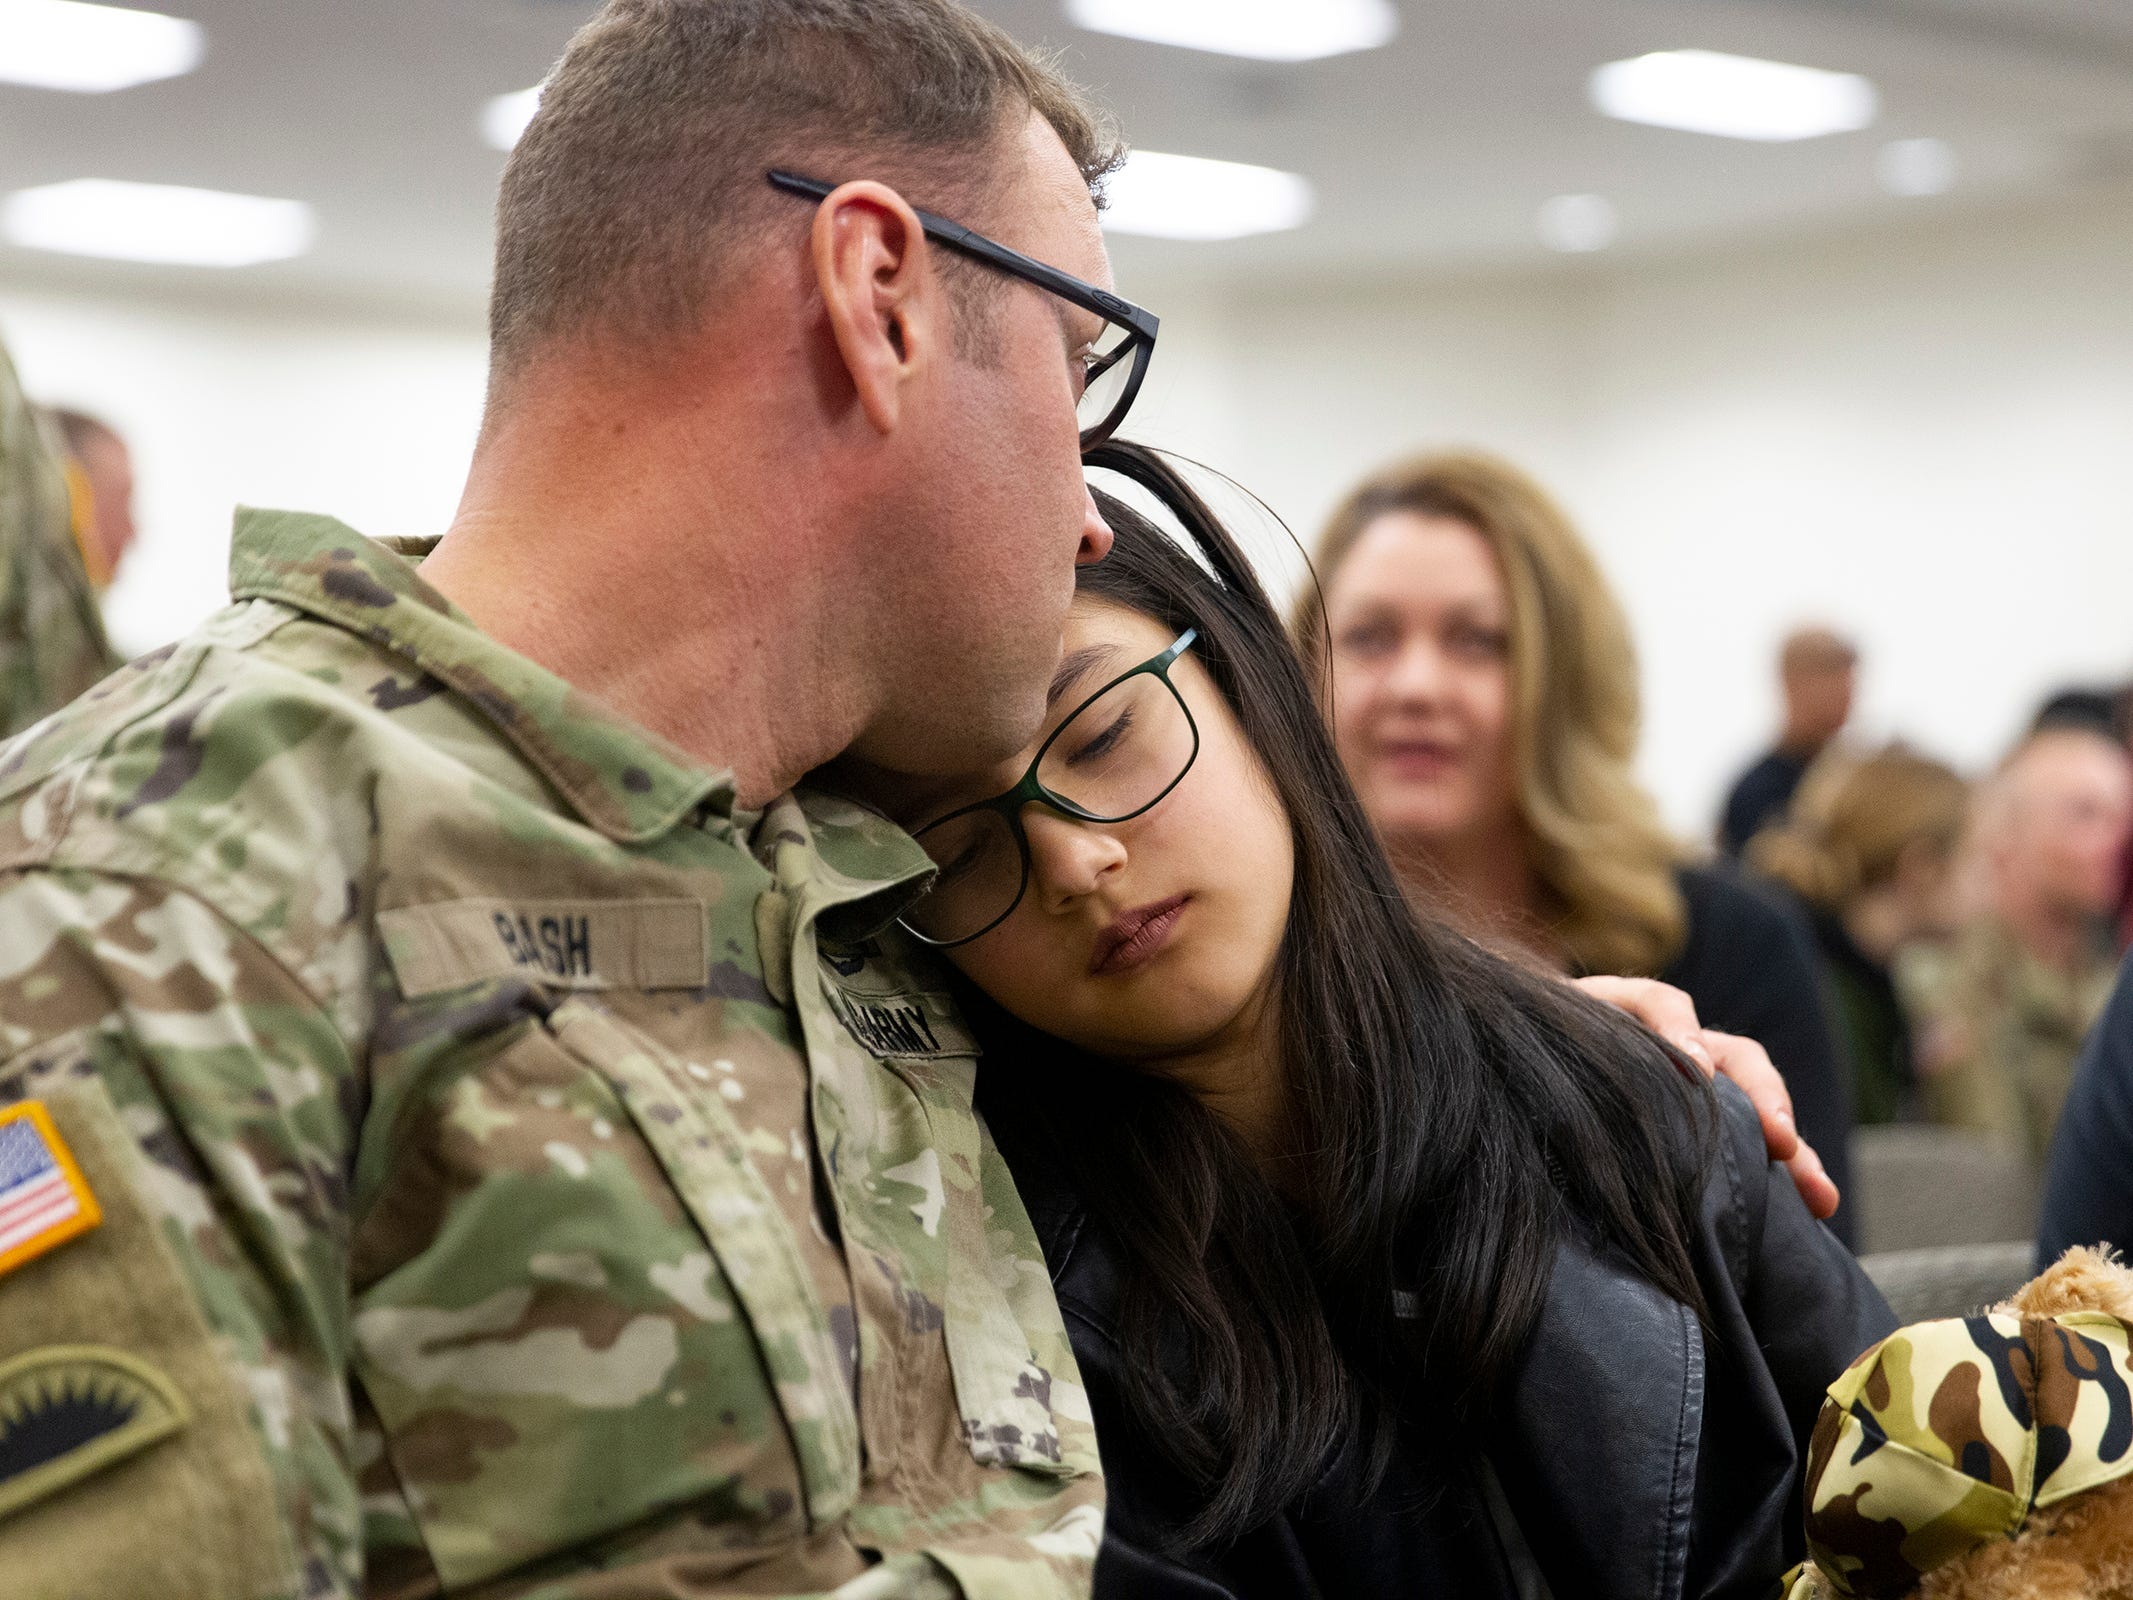 Dan Bash spends a moment with his 11-year-old daughter Ophelia Bash before the deployment ceremony of the 253rd Engineer Battalion at Papago Park Military Reservation on Sunday, Feb. 24, 2019. The soldiers boarded buses immediately after the ceremony.